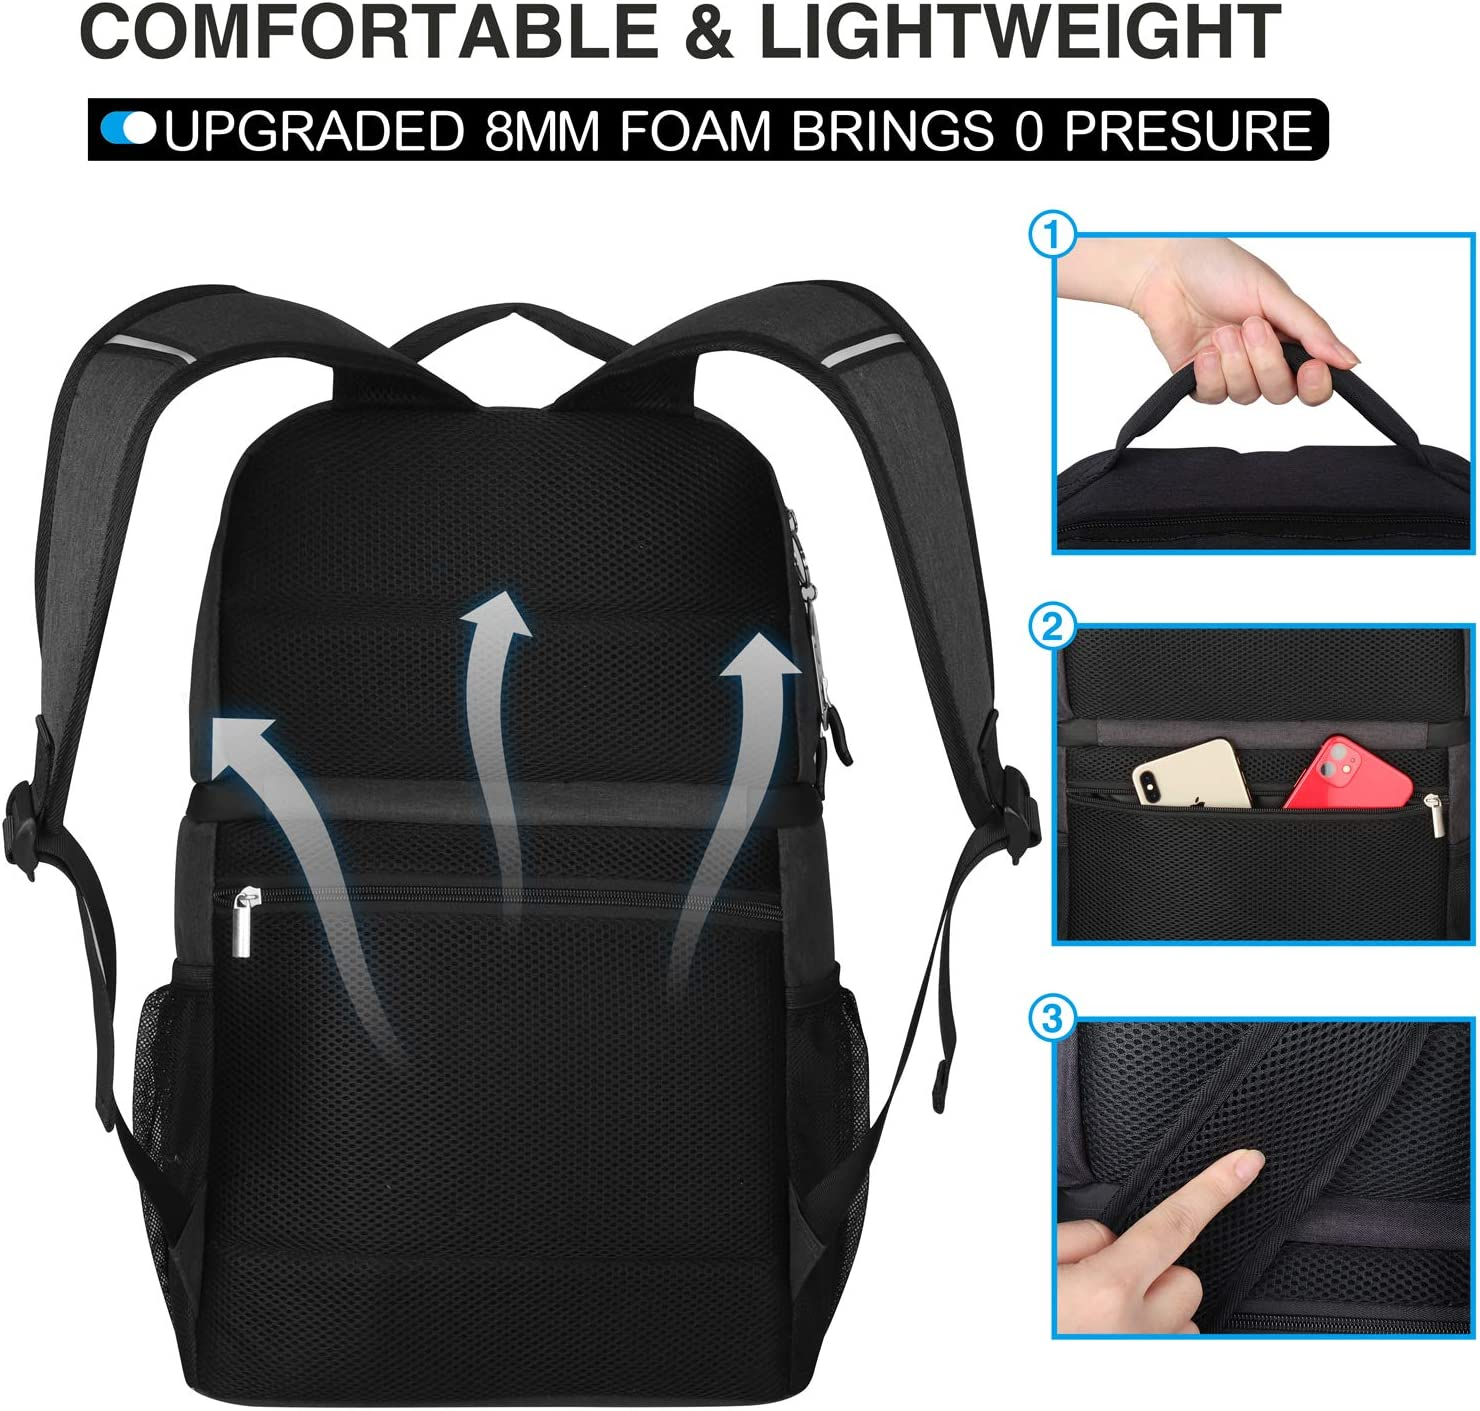 Leakproof Spacious Lightweight Soft Cooler Bag Backpack Cooler for Men Women to Work Travel Hiking Beach Black Double Deck Insulated Cooler Backpack